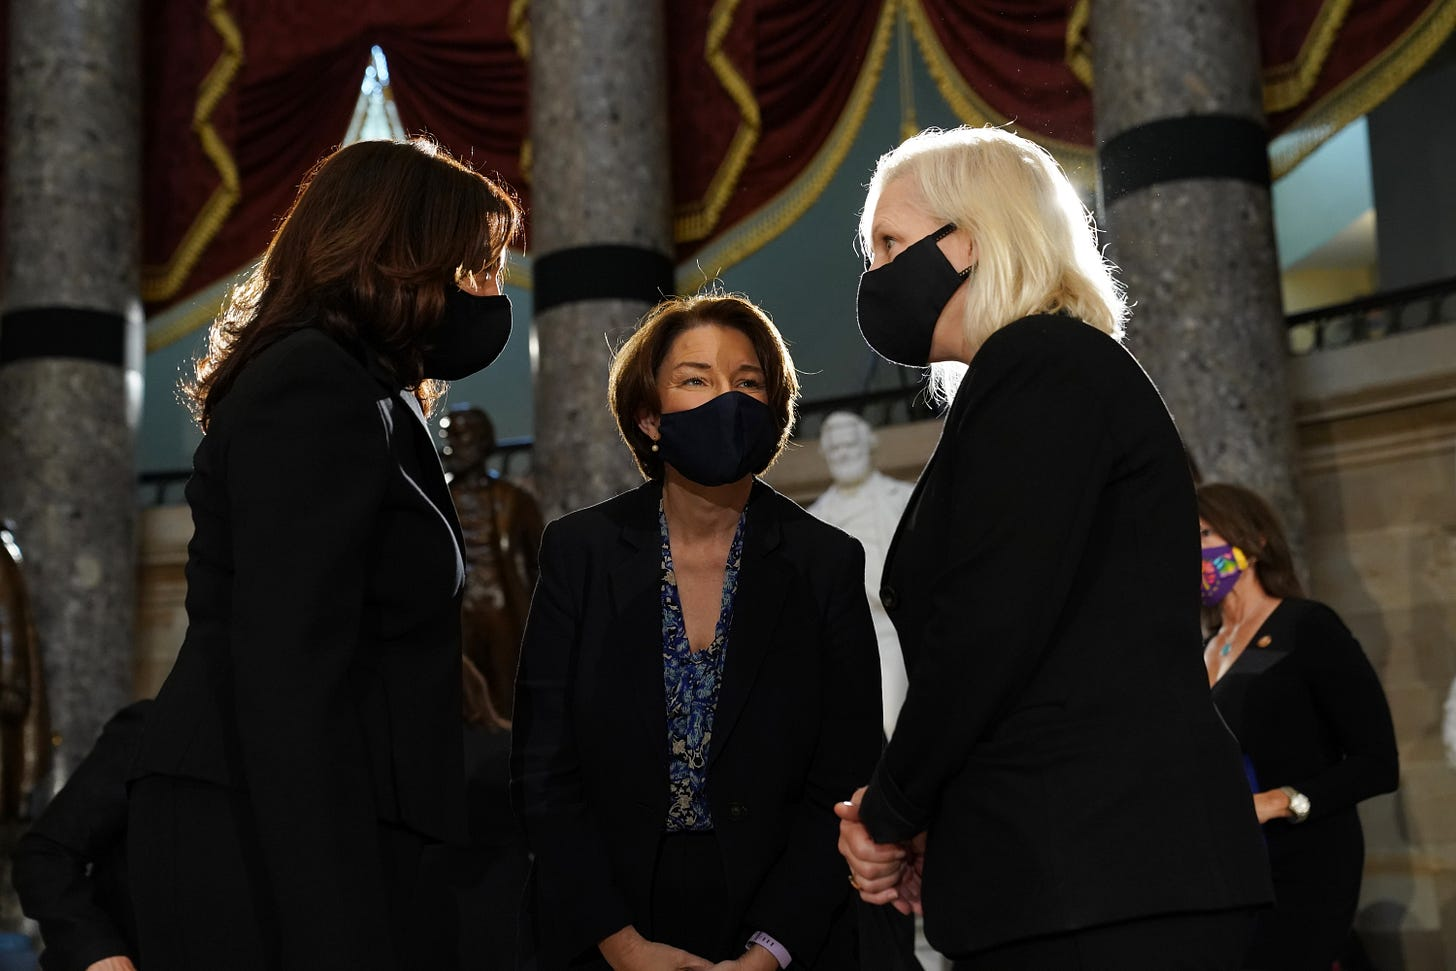 Democratic U.S. Vice Presidential nominee Sen. Kamala Harris (D-CA), Sen. Amy Klobuchar (D-MN) and Sen. Kirsten Gillibrand (D-NY) speak prior to a memorial service in honor of the late Associate Justice Ruth Bader Ginsburg in the Statuary Hall of the US Capitol, on September 25, 2020 in Washington, DC.